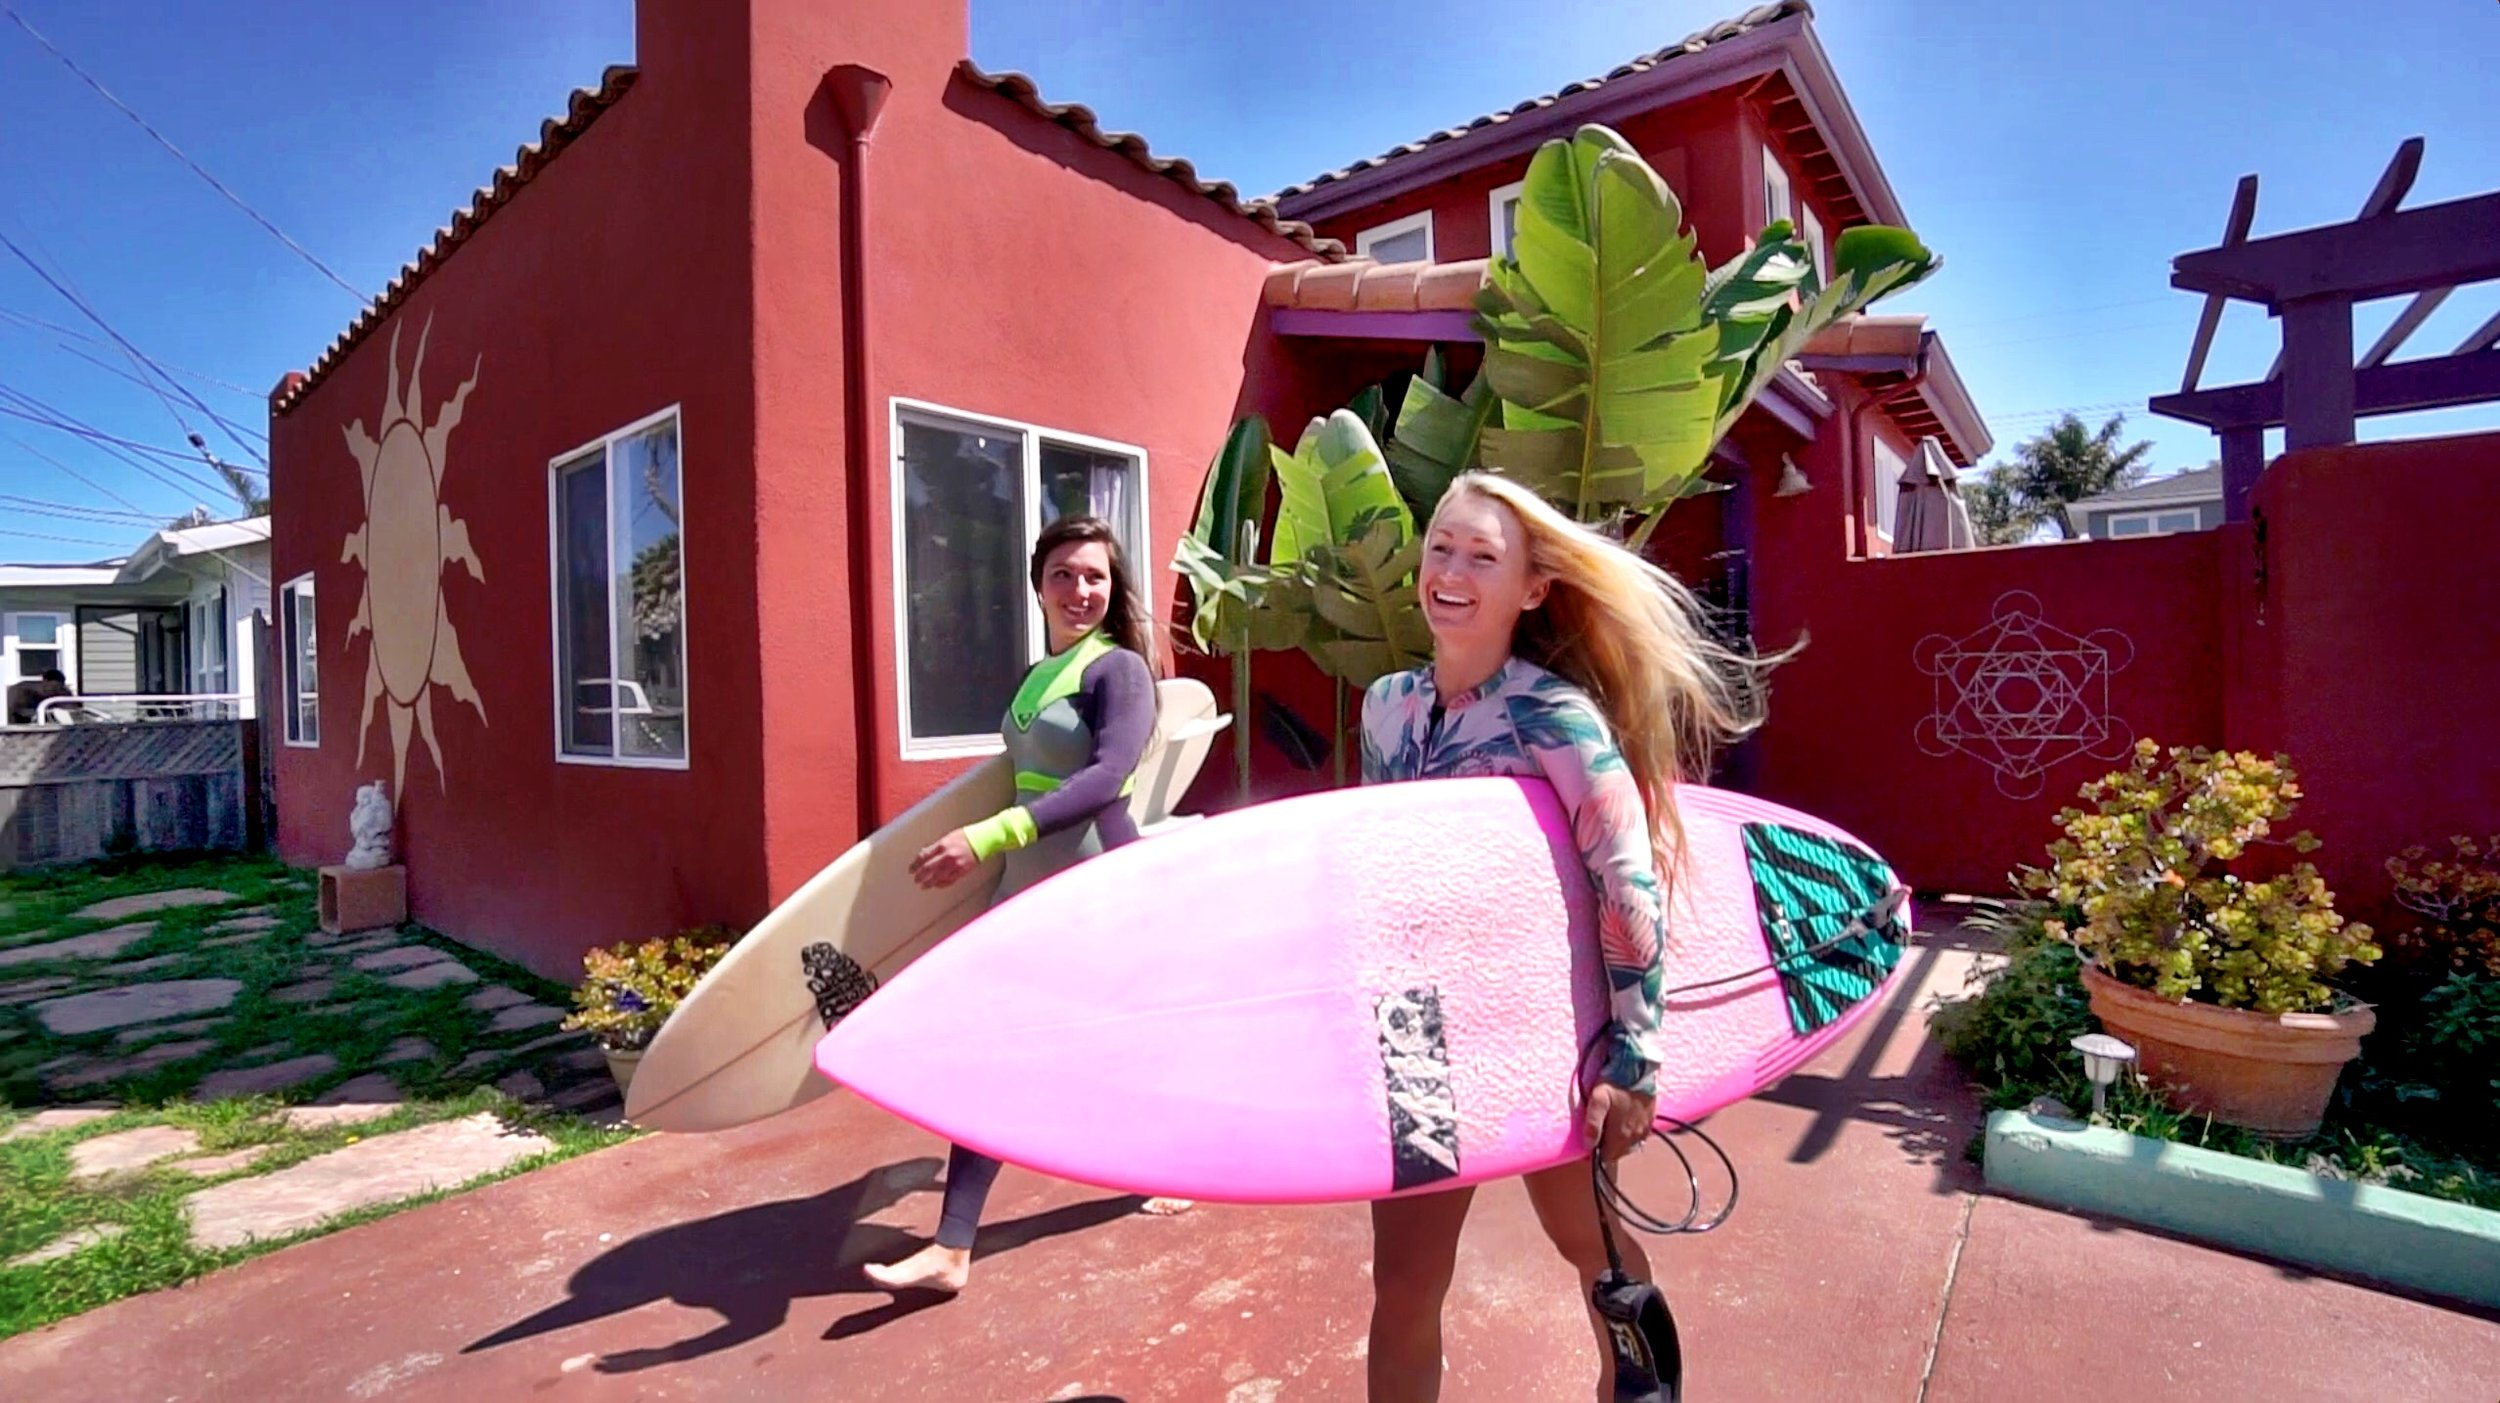 Girls with Surfboards.jpg